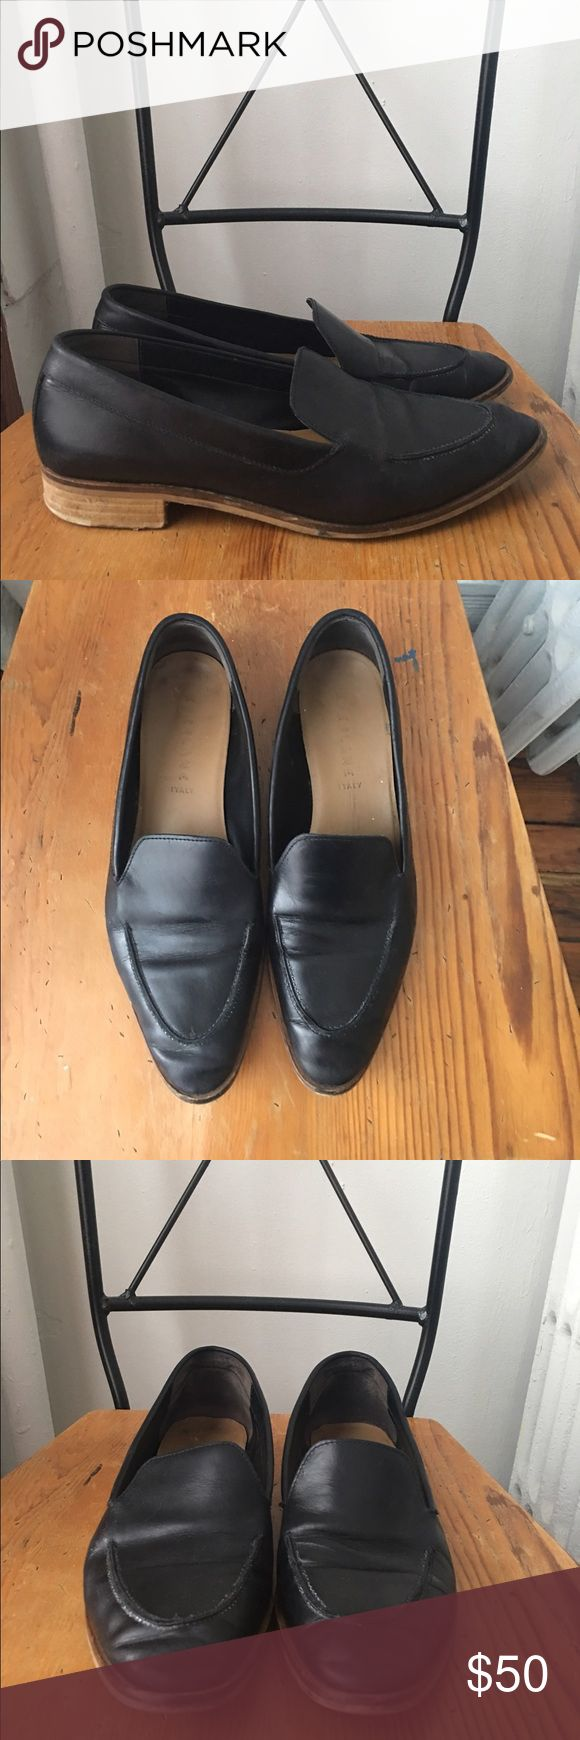 Everlane The Modern Loafer Beautiful black leather loafer from Everlane in size 10. I've worn them ~12 times, so there's wear on the soles and I've priced them accordingly. However, the leather itself is in great shape! Super comfy and have never given me blisters. Fits true to size. Feel free to make an offer. Everlane Shoes Flats & Loafers